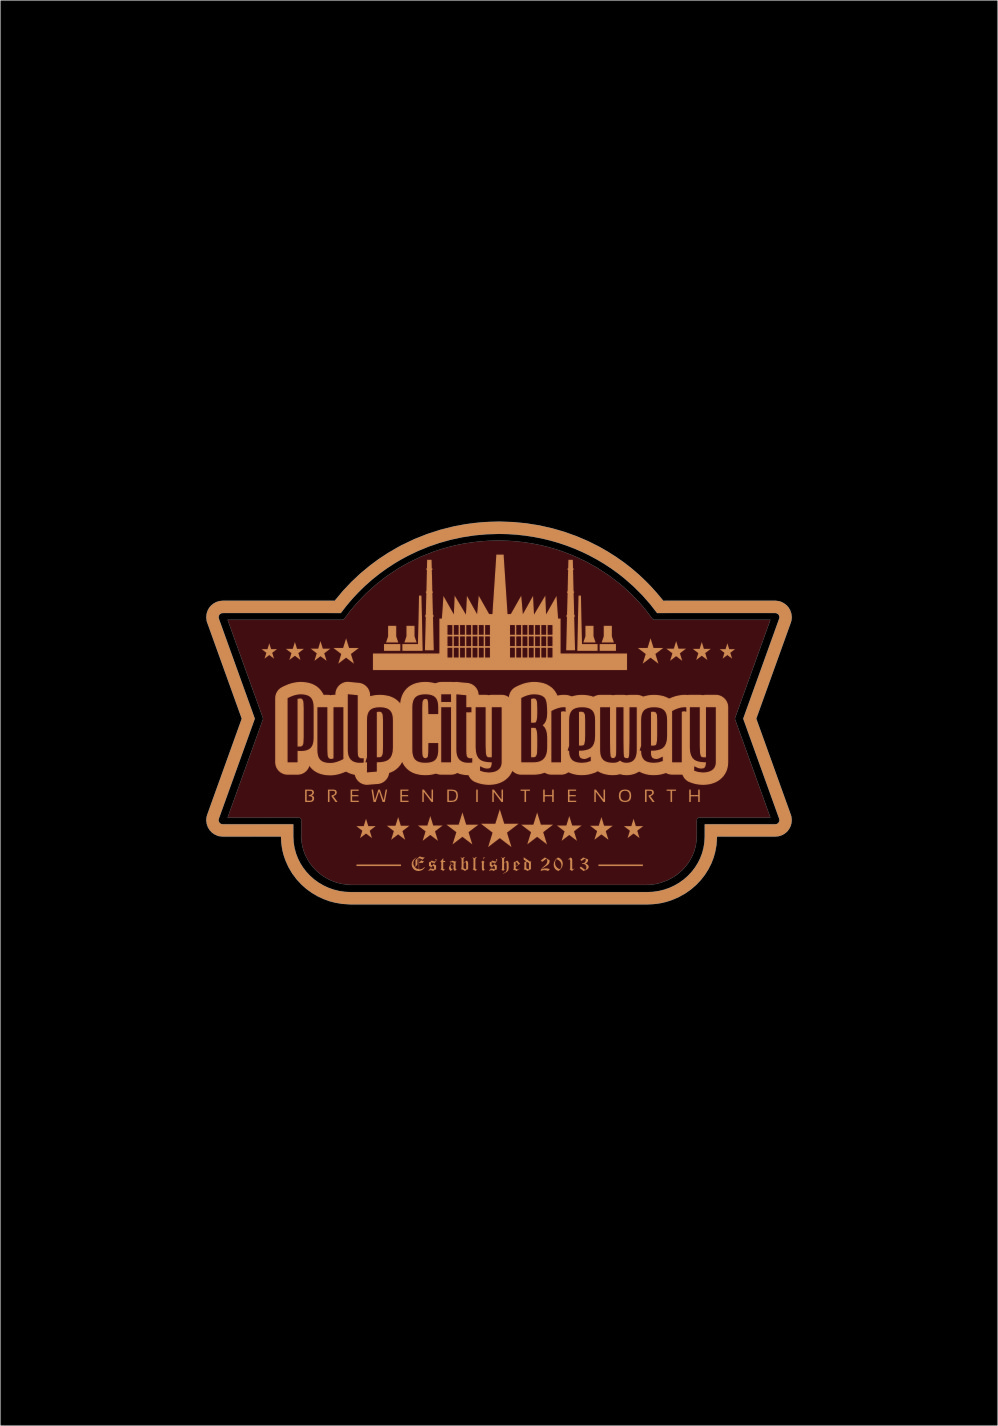 Logo Design by Ngepet_art - Entry No. 82 in the Logo Design Contest Artistic Logo Design for Pulp City Brewery.